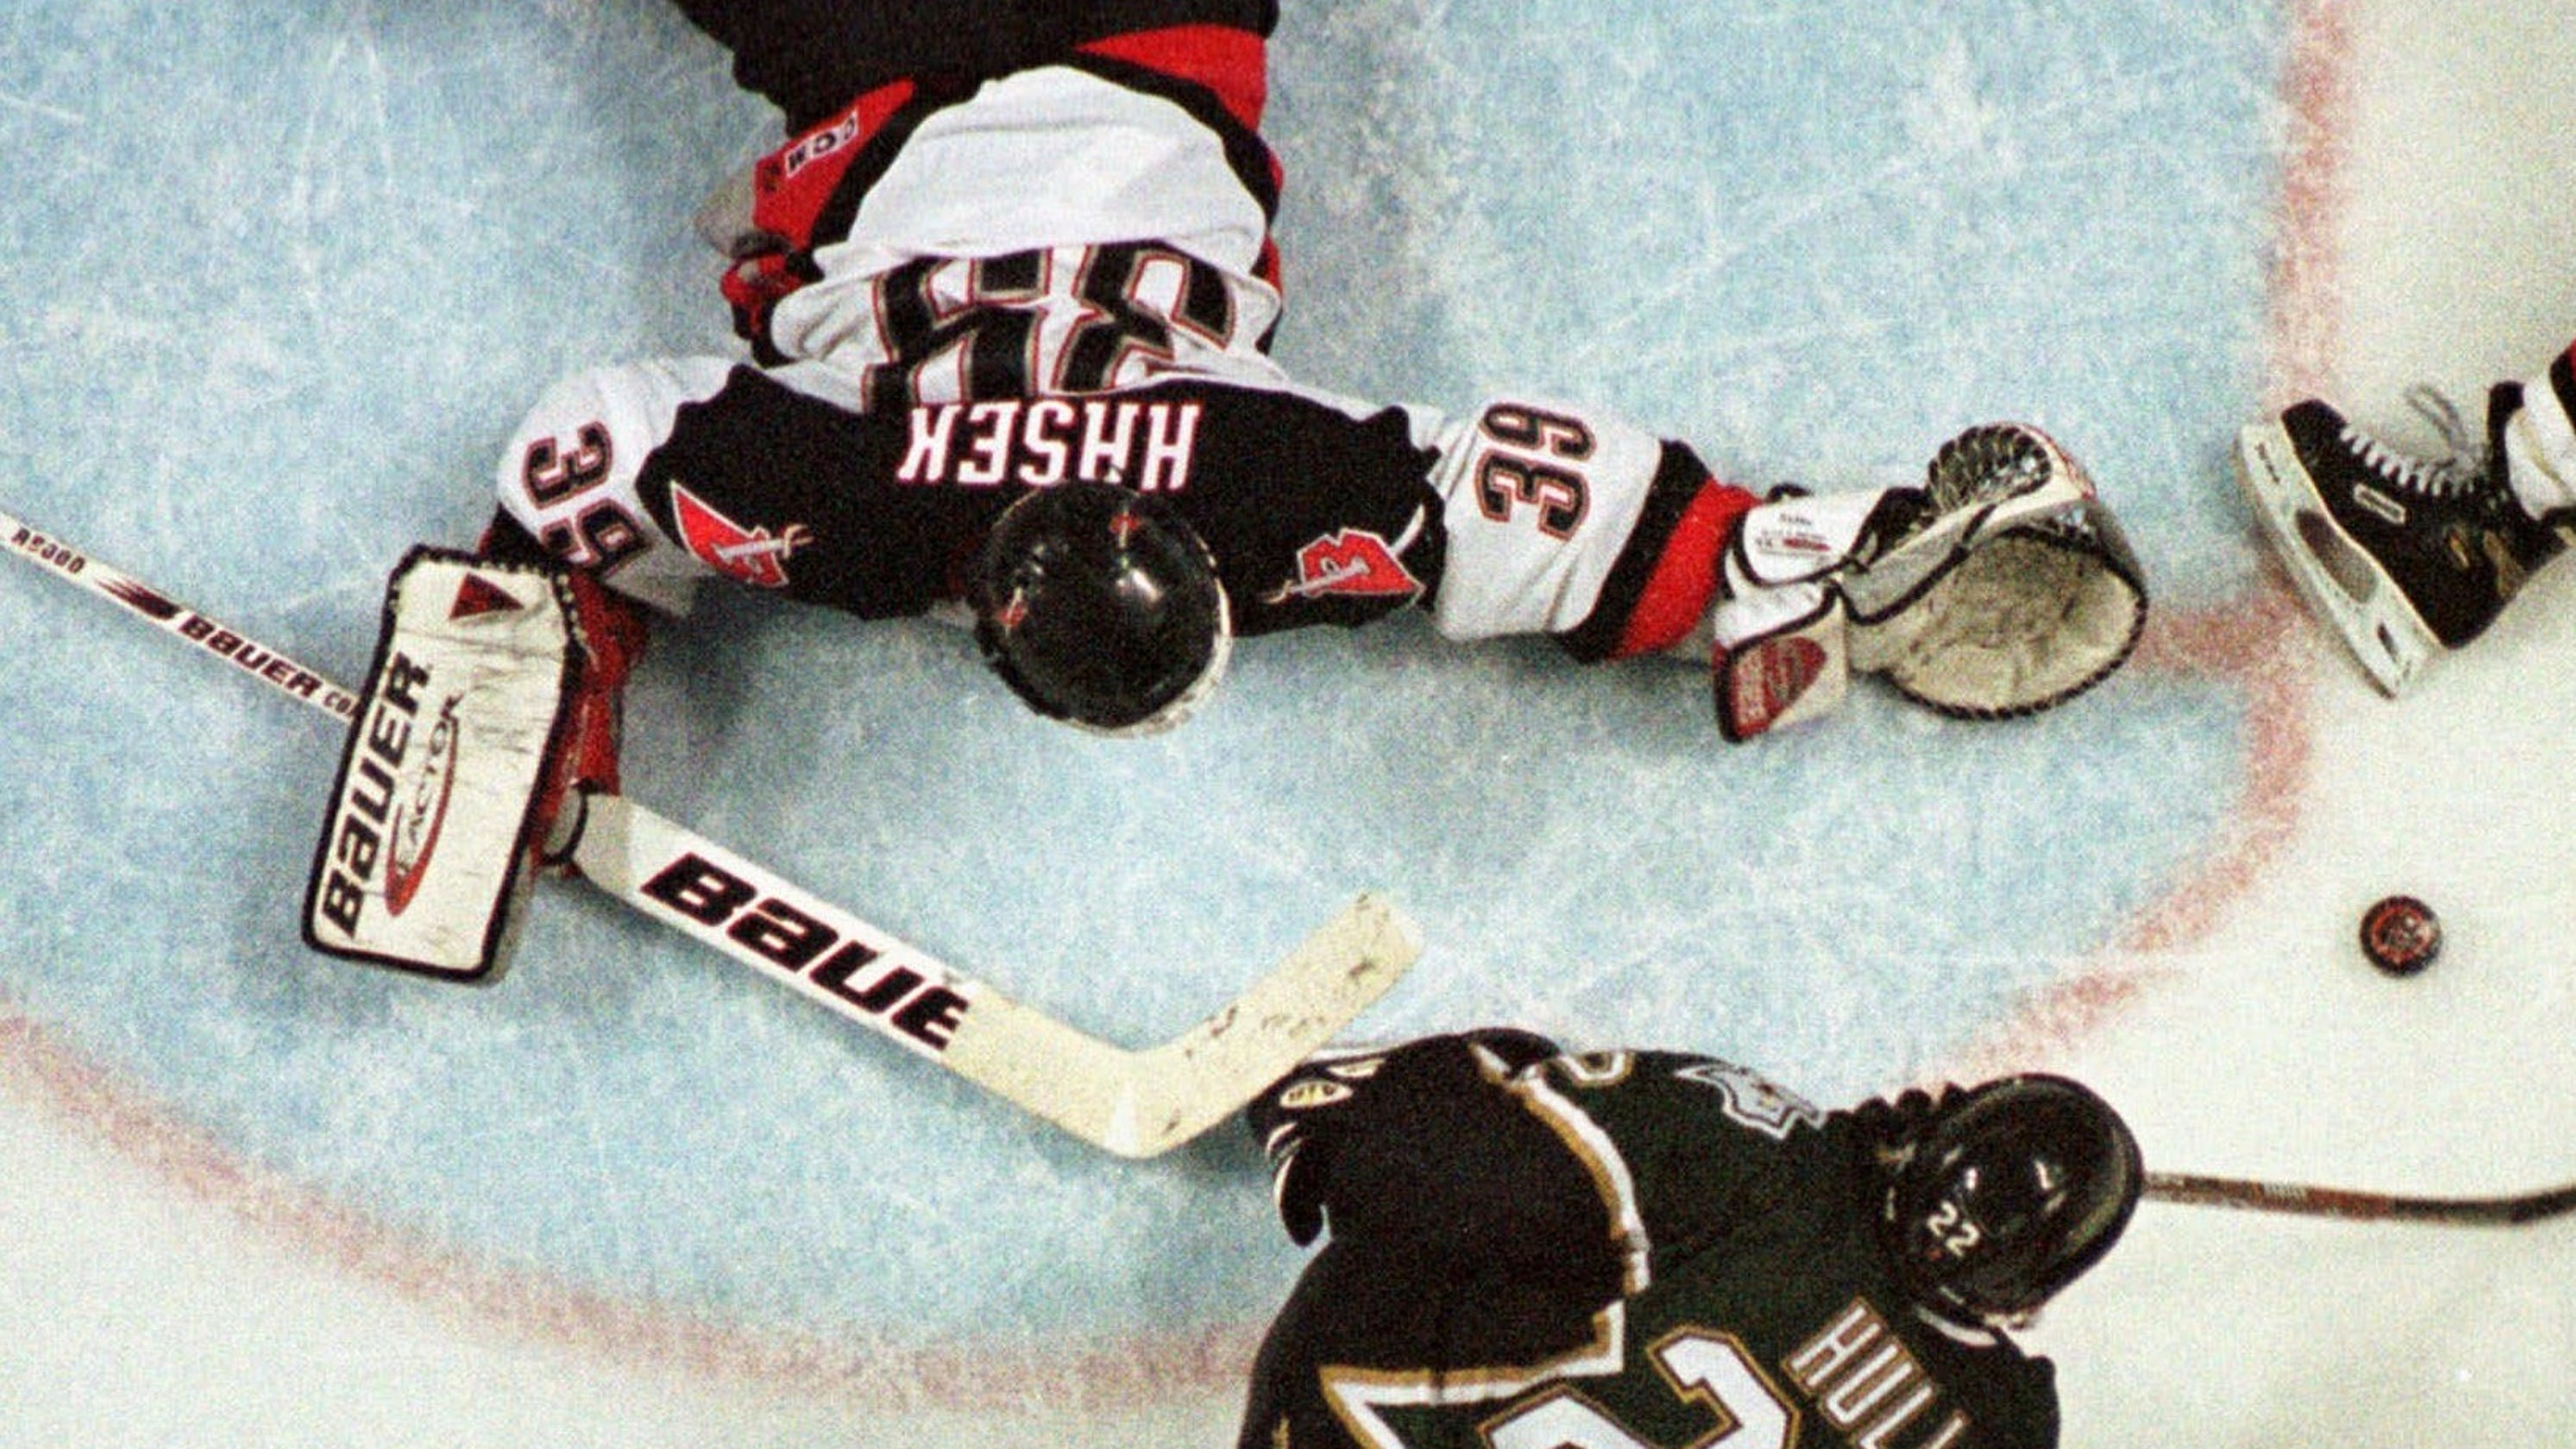 NHL playoffs have often been tilted by controversial calls: Here are some of the most memorable